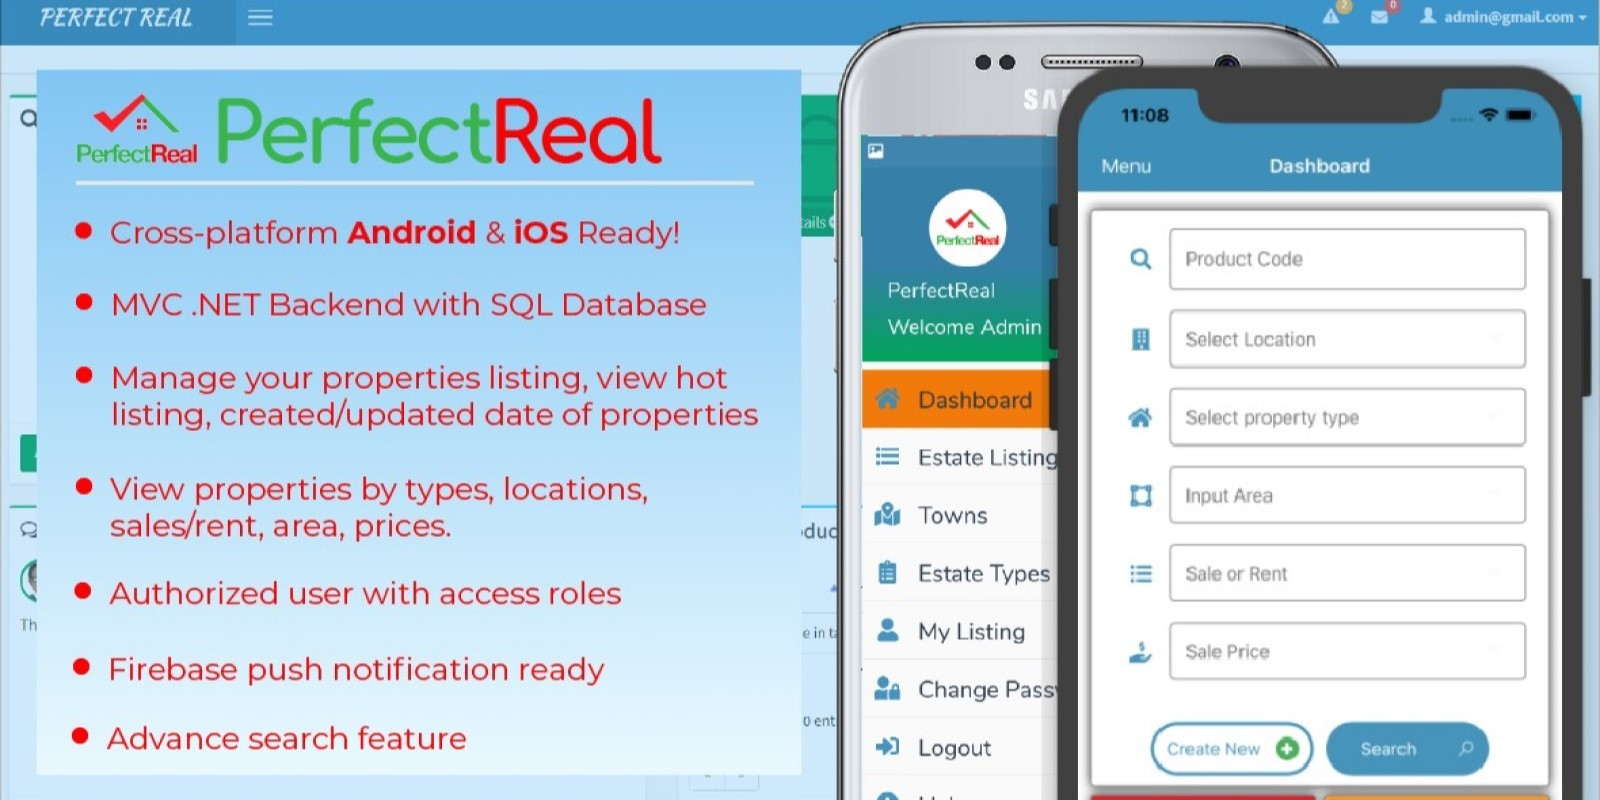 PerfectReal RealEstate Management App - Xamarin